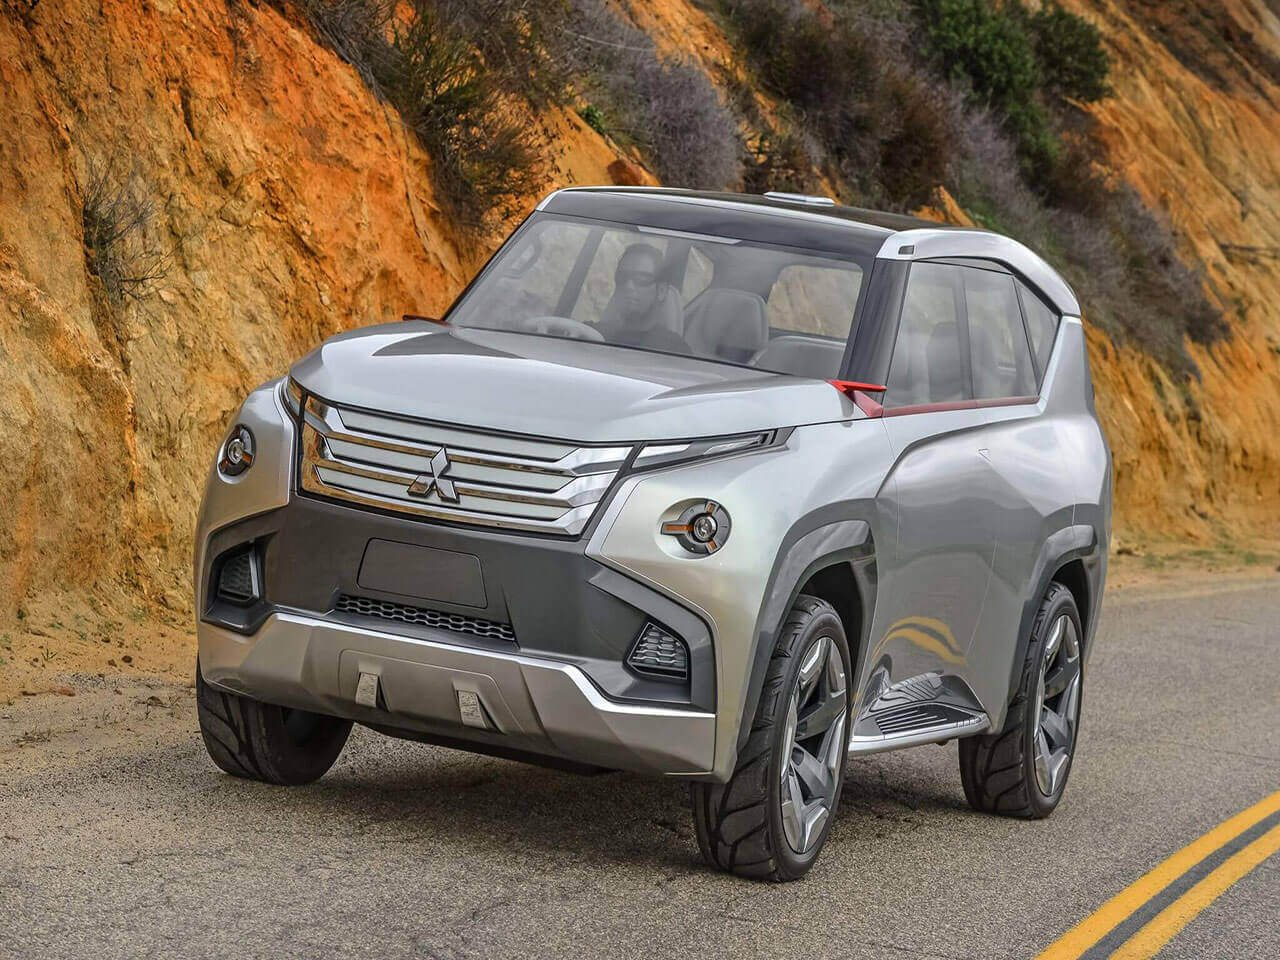 2017 mitsubishi montero futuristic suv from rising sun country might get hybrid engine. Black Bedroom Furniture Sets. Home Design Ideas